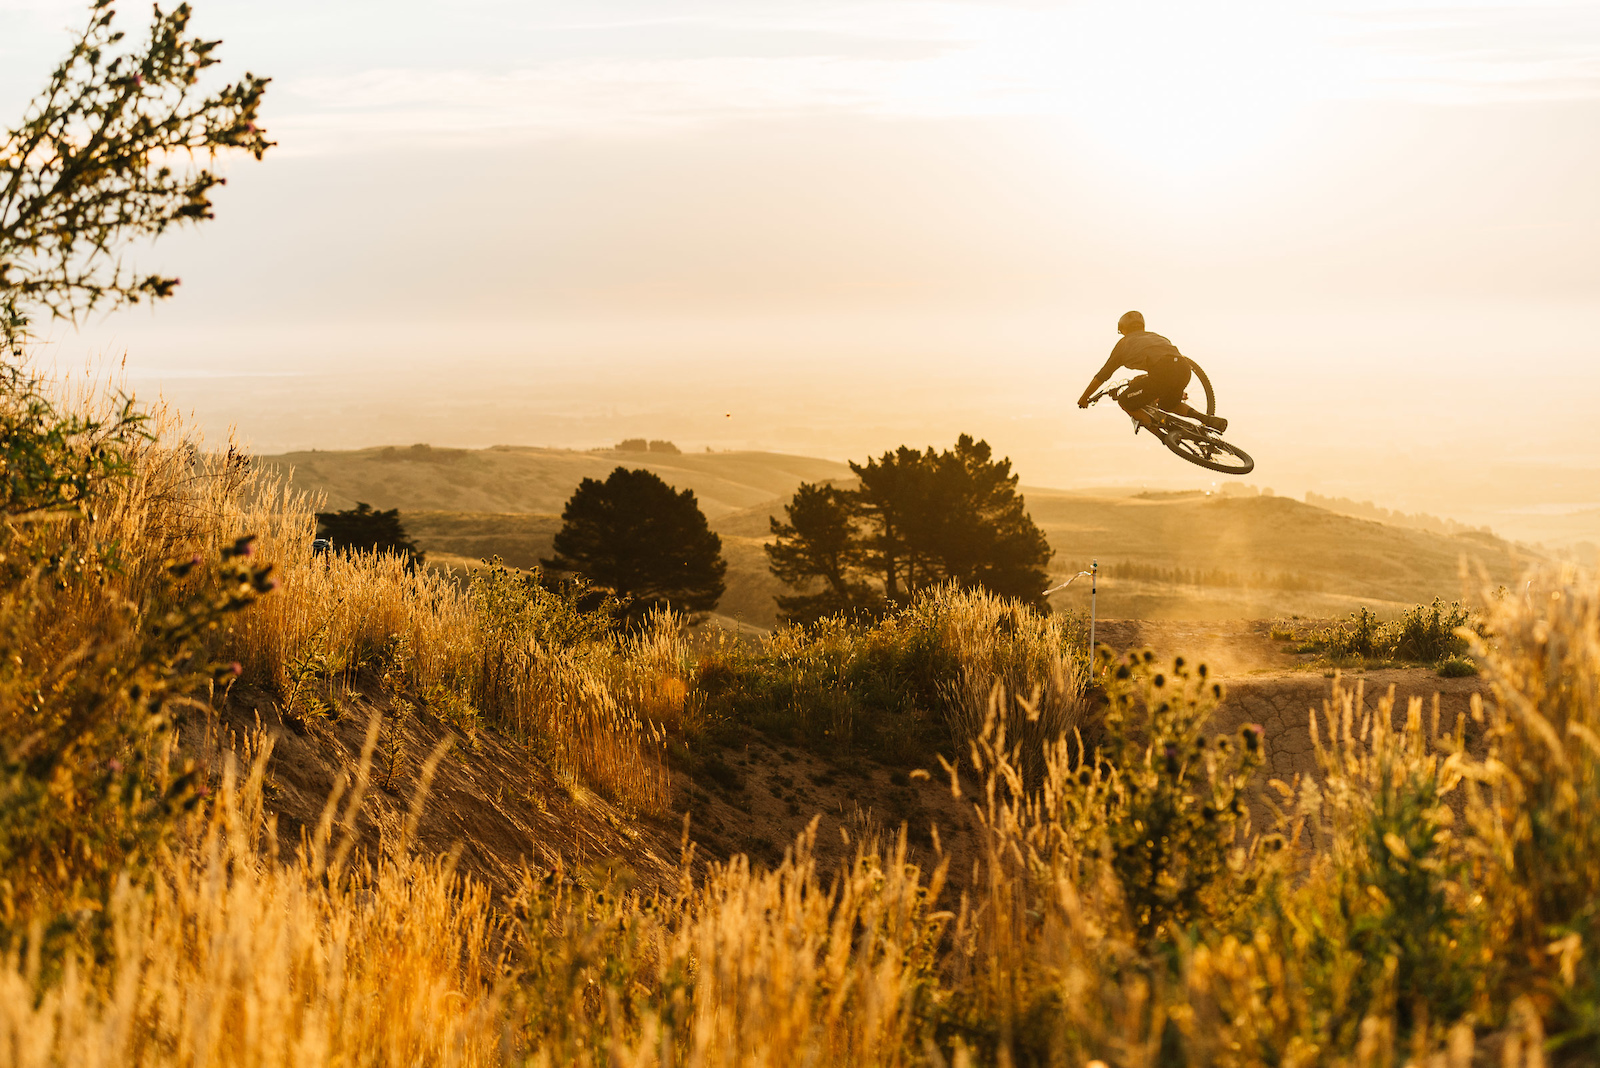 Sam shows his style and comfort on a bike over the tables on Airtearoa.